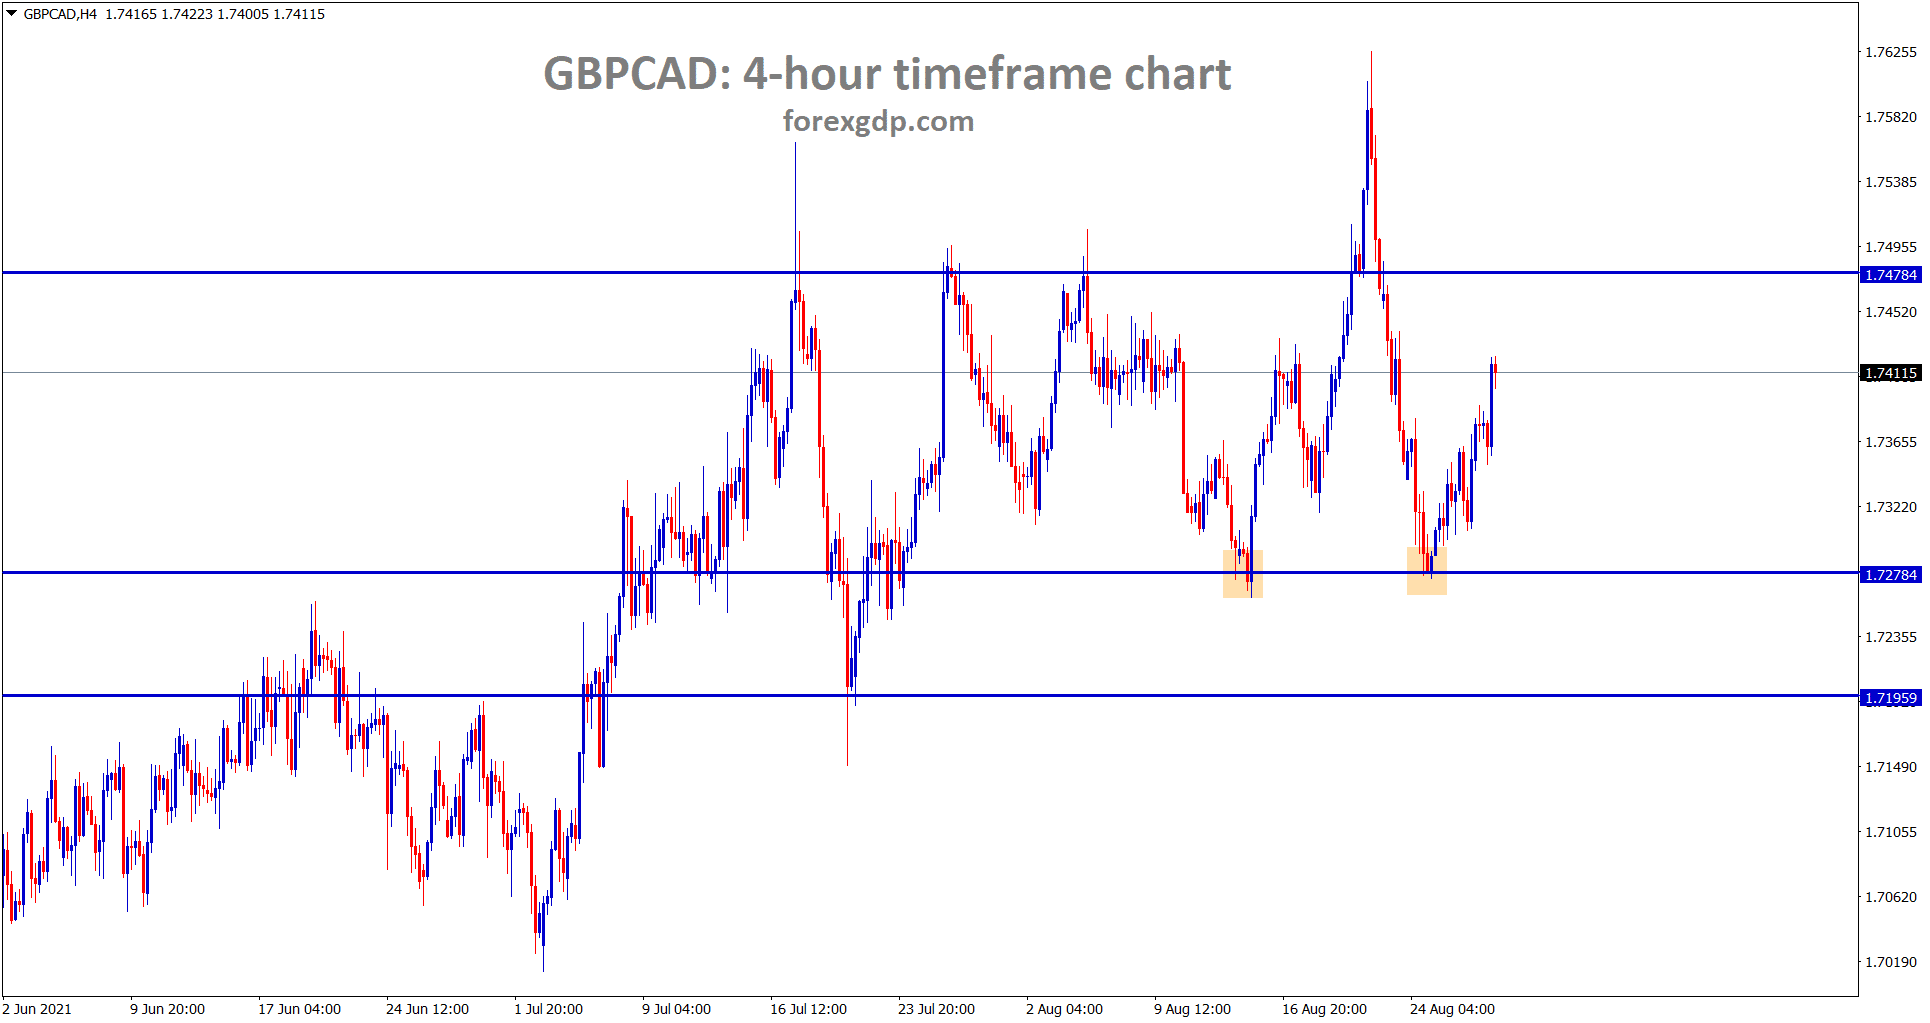 GBPCAD bounces back harder after hitting the support area however price is ranging between the support and resistance areas